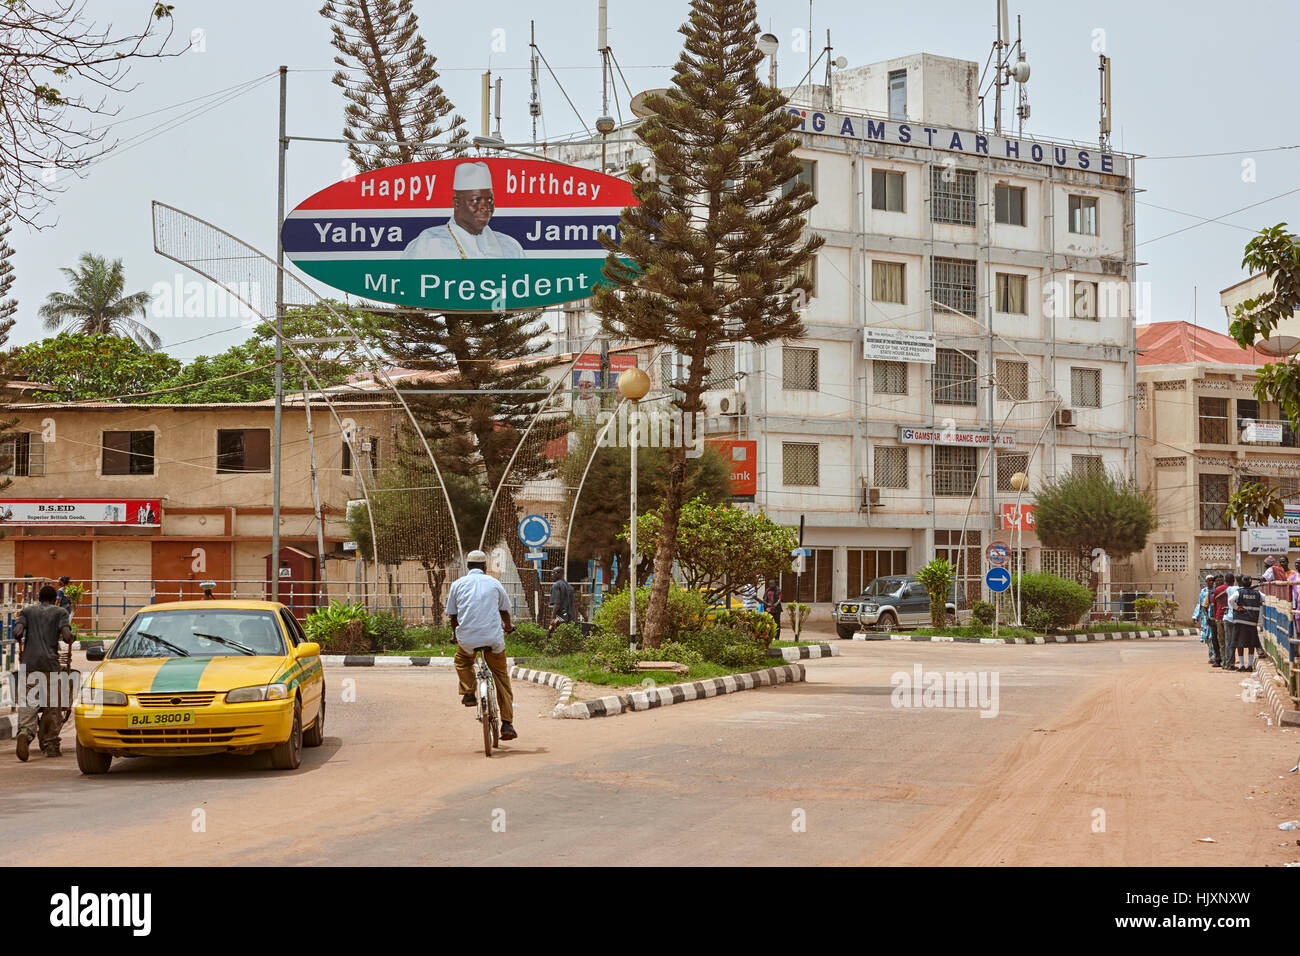 Birthday sign for president Yahya Jammeh on Independence Way, Banjul